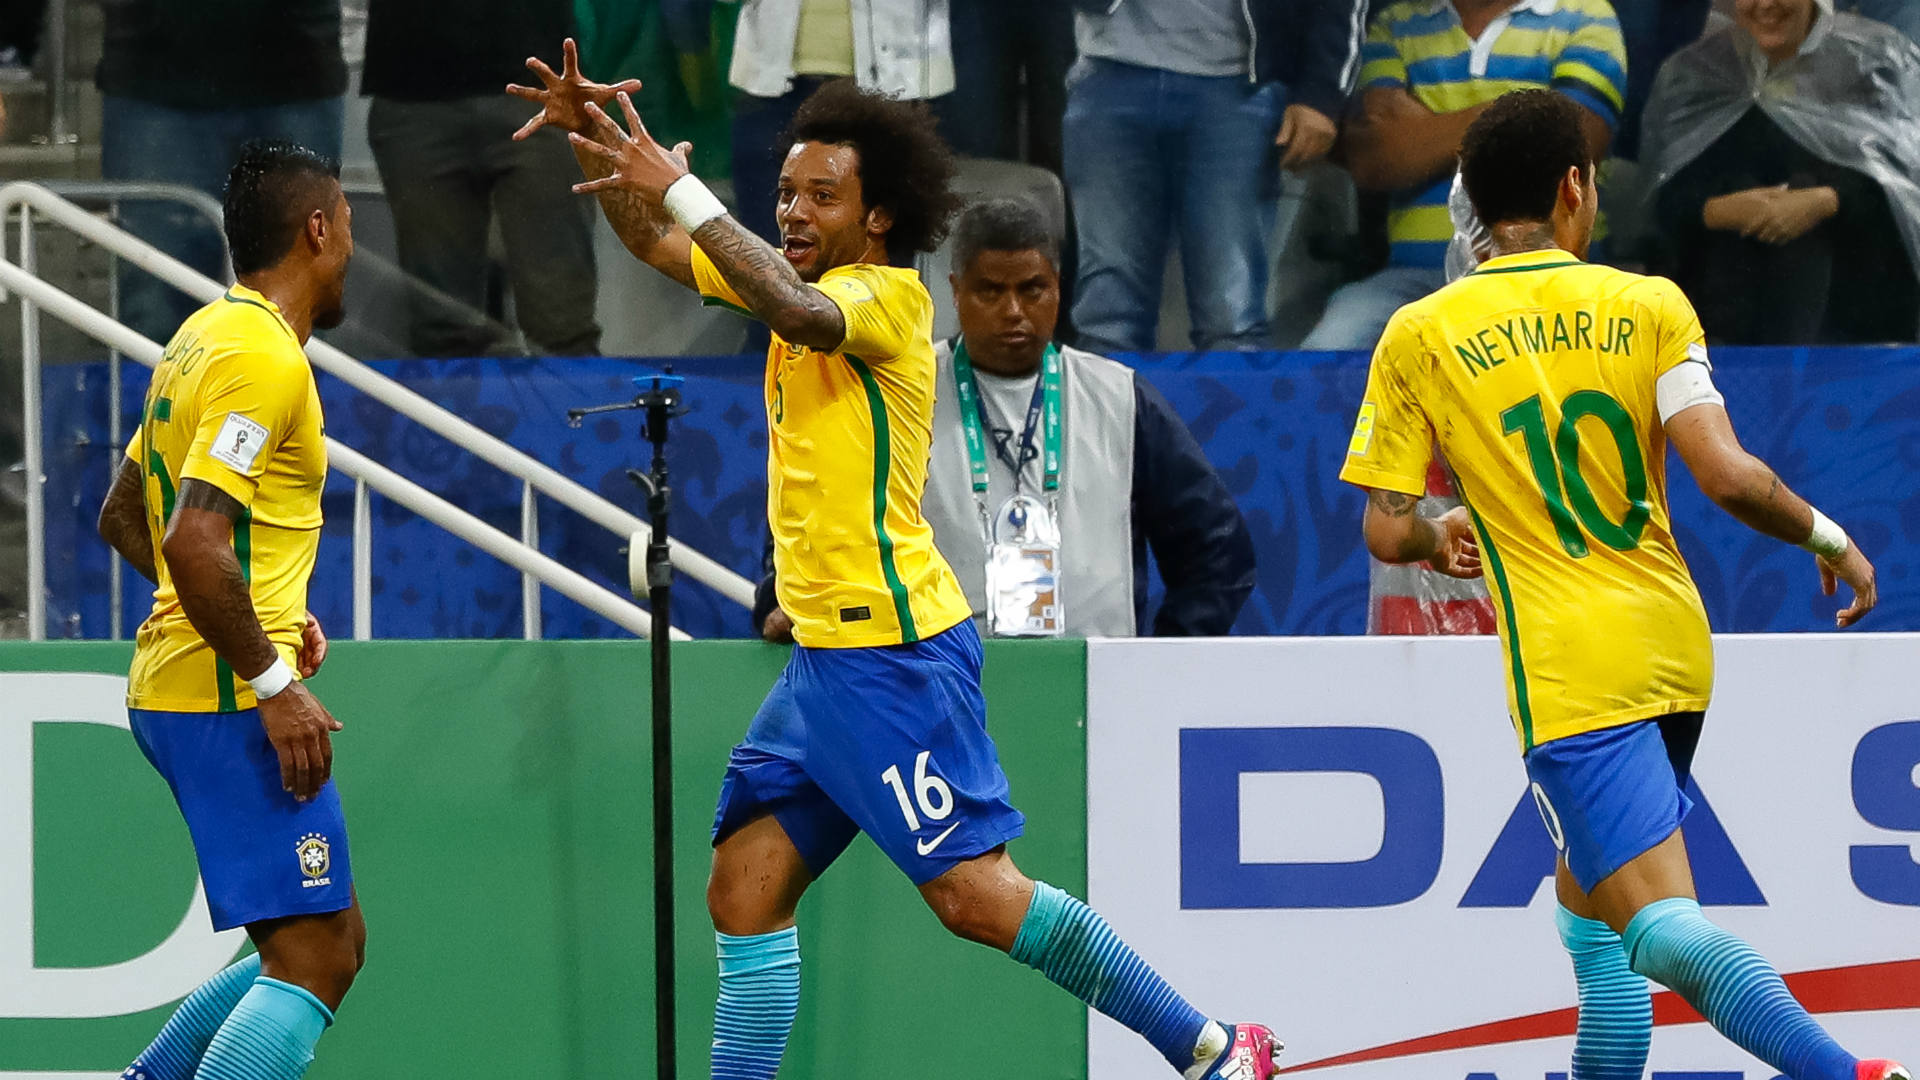 Brazil reclaim top spot in Federation Internationale de Football Association rankings